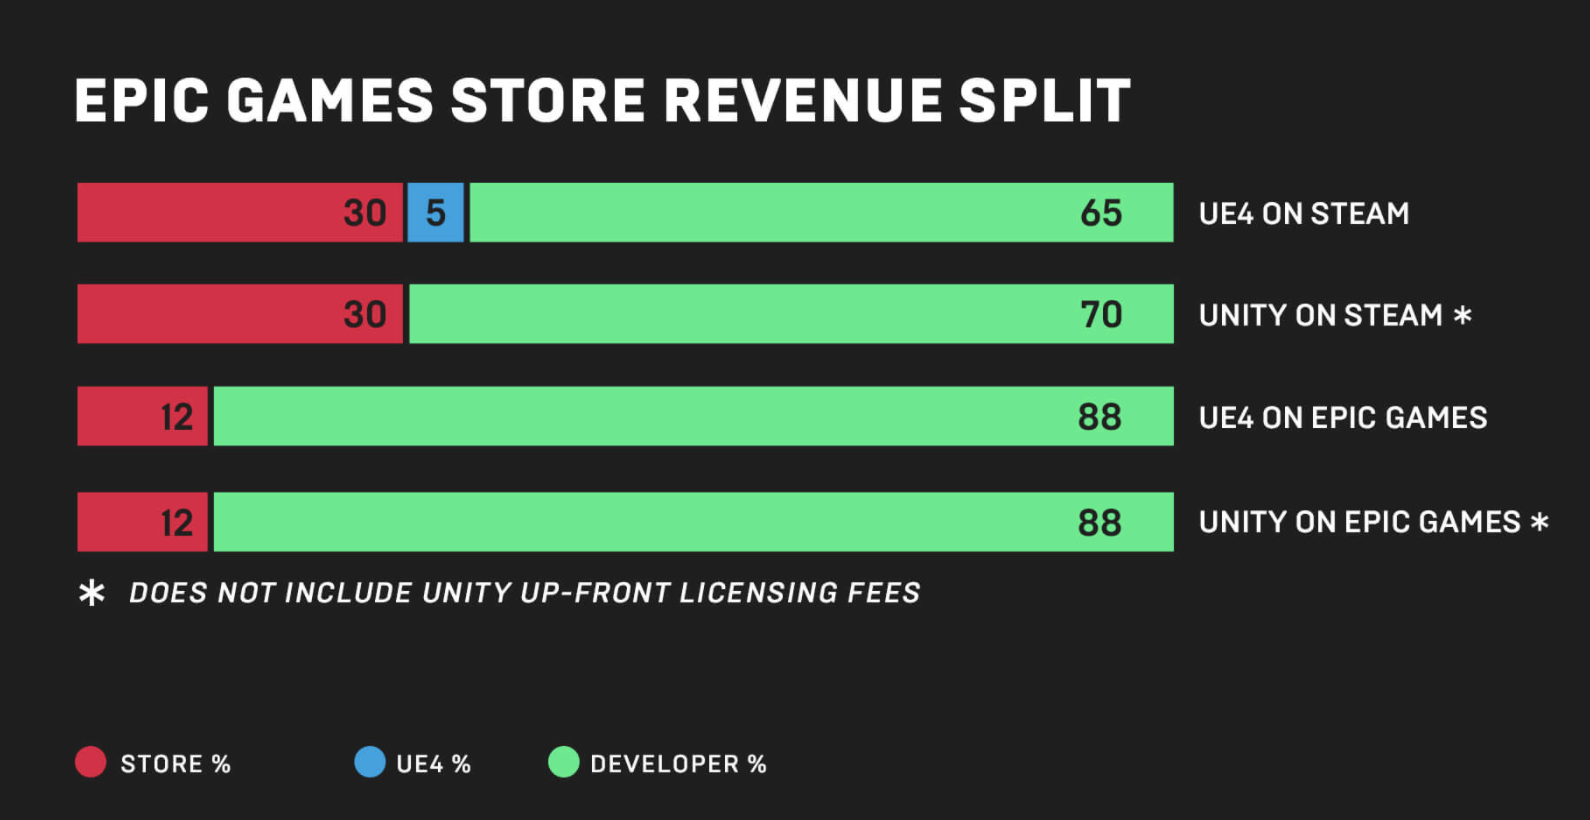 Diagram revenue distribution between developers and Steam/Epic Games